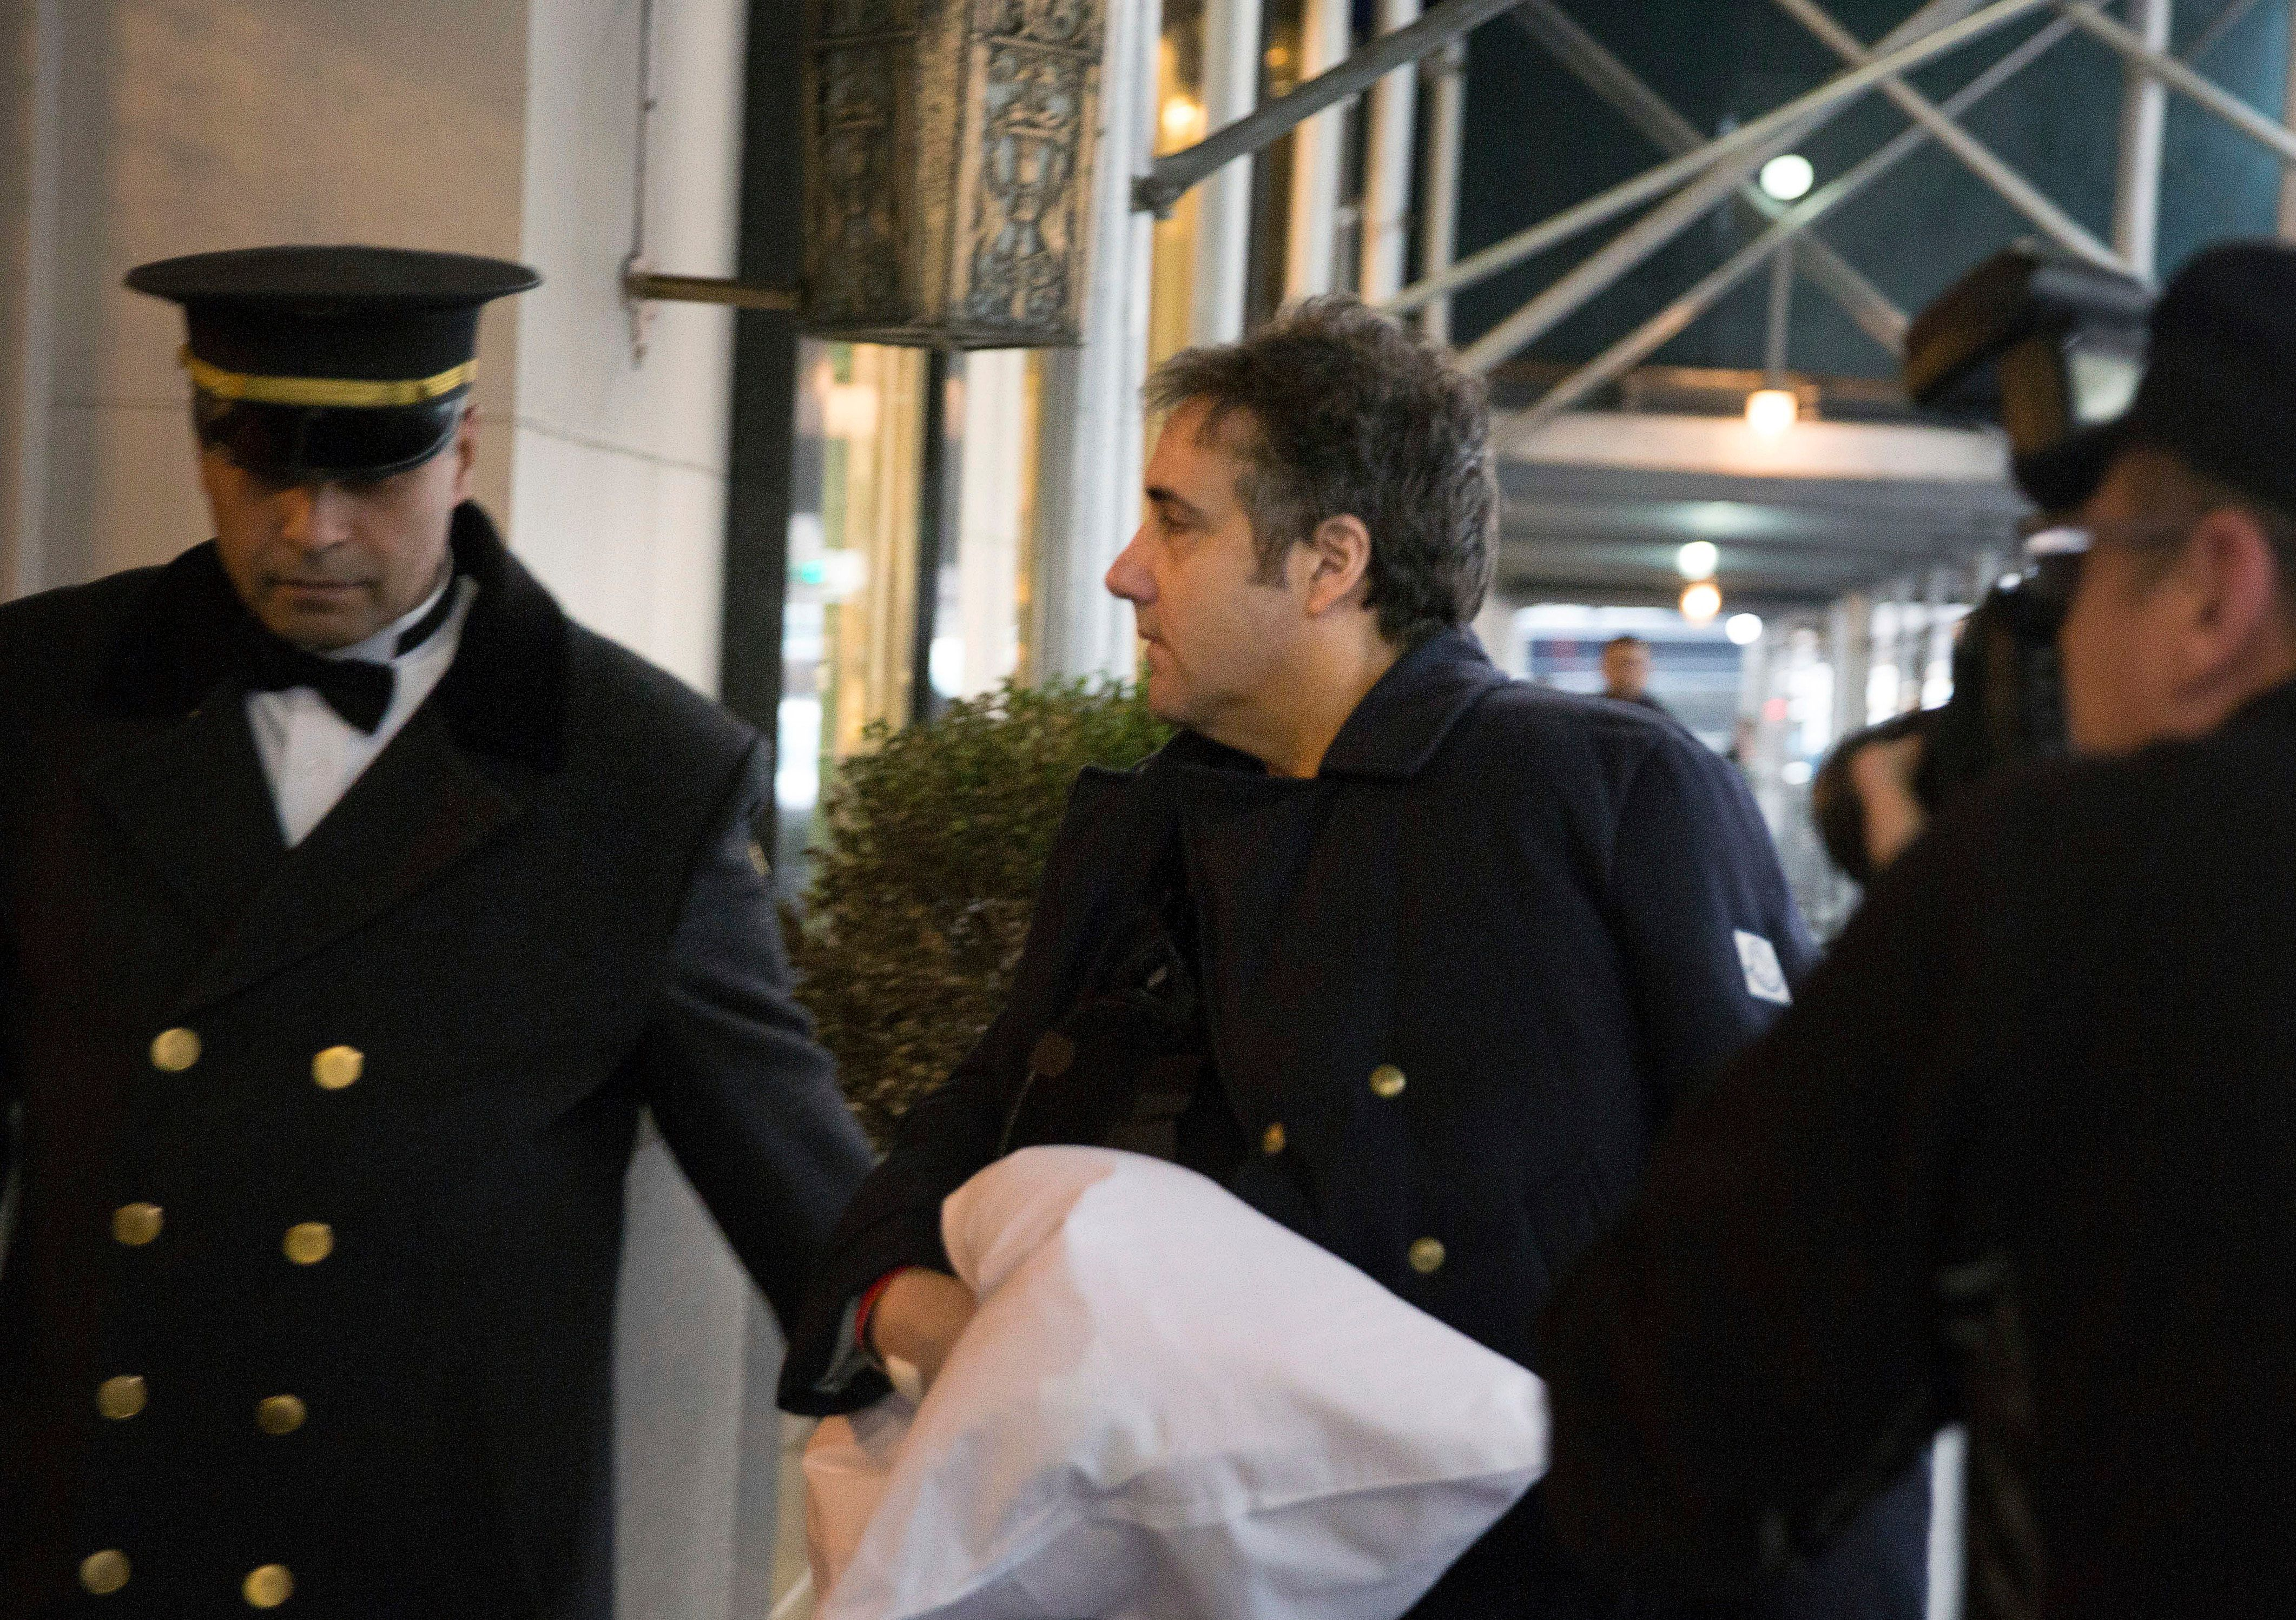 """ADDS THAT COHEN'S LEFT ARM IS IN A SLING - Michael Cohen arrives at his home in New York with his left arm in a sling supported by a pillow Friday, Jan. 18, 2019. Democrats are vowing to investigate whether President Donald Trump directed Cohen, his personal attorney, to lie to Congress about a Moscow real estate project, calling that possibility a """"concern of the greatest magnitude.""""  (AP Photo/Kevin Hagen)"""